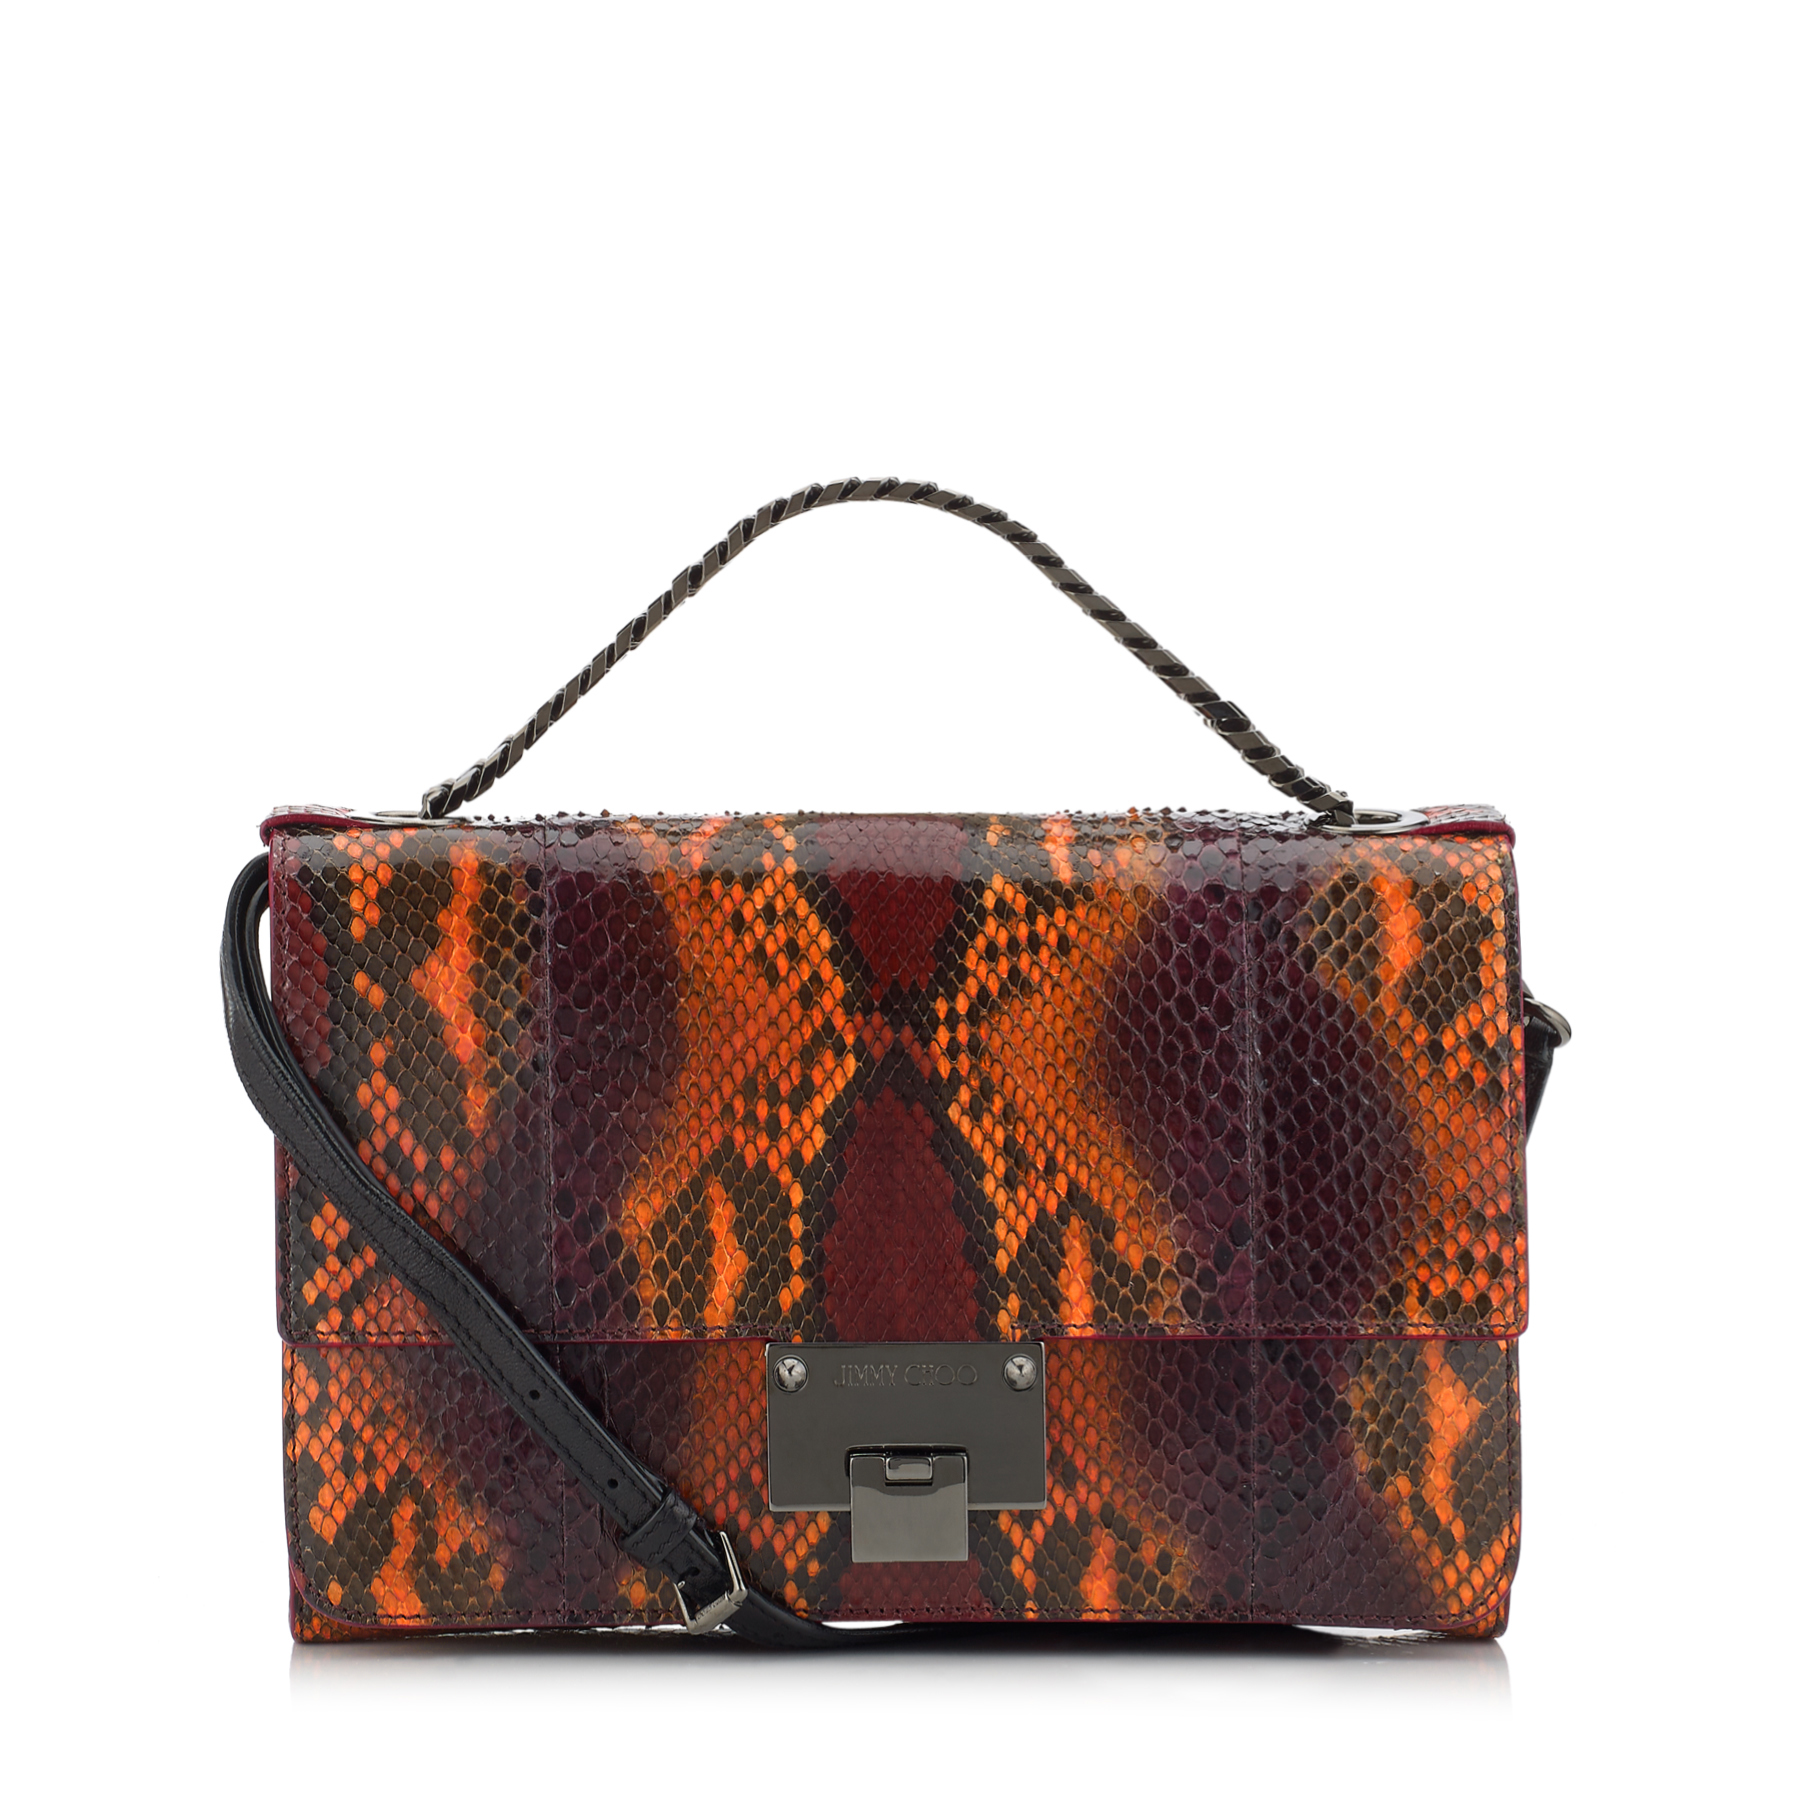 REBEL SOFT/S Neon Orange and Bordeaux Glossy Painted Python Messenger Bag